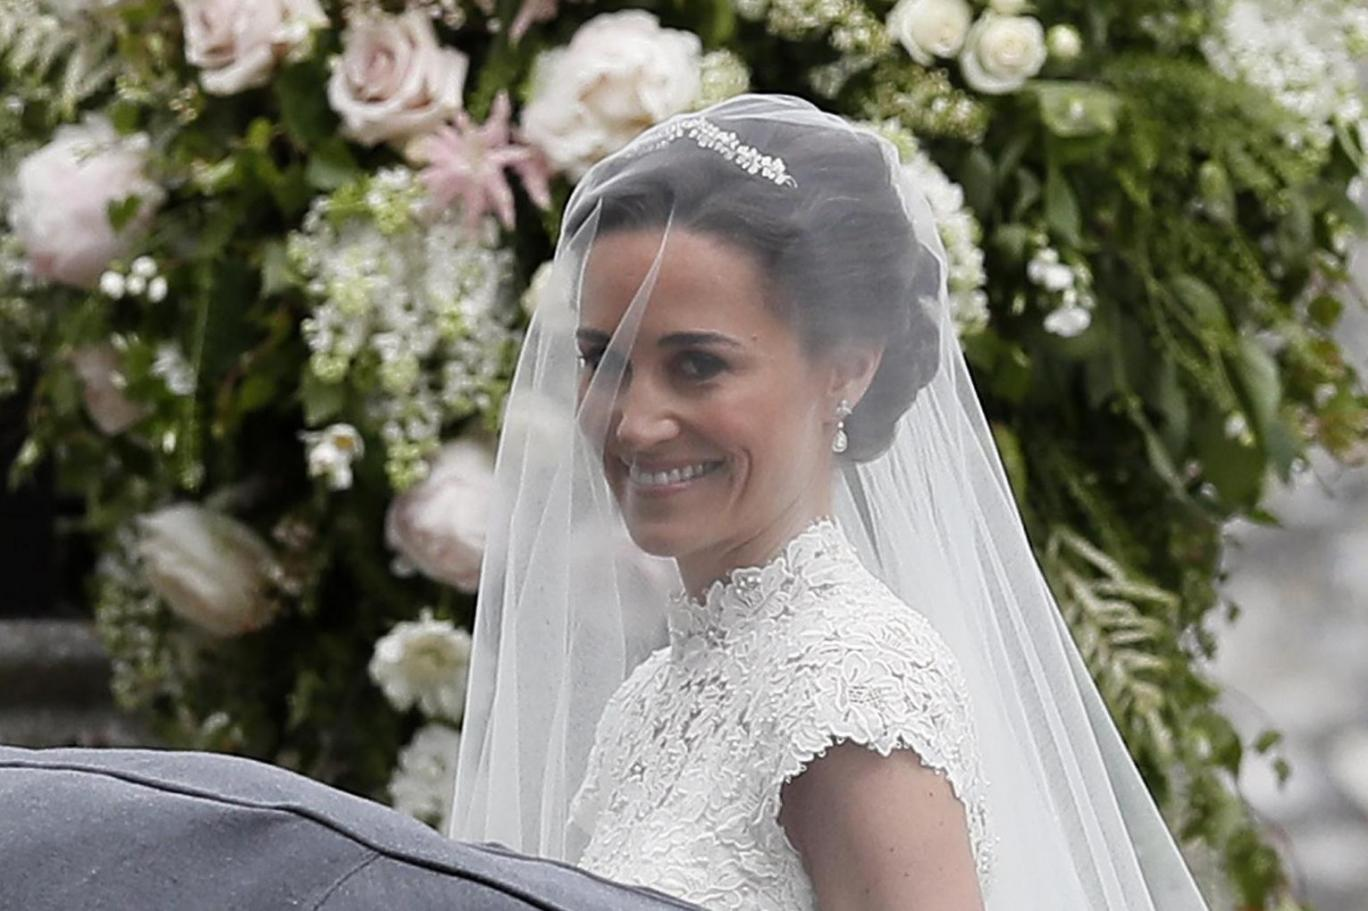 Pippa Middleton wedding: Stunning bride Pippa Middleton and groom James Matthews arrive at church for ceremony